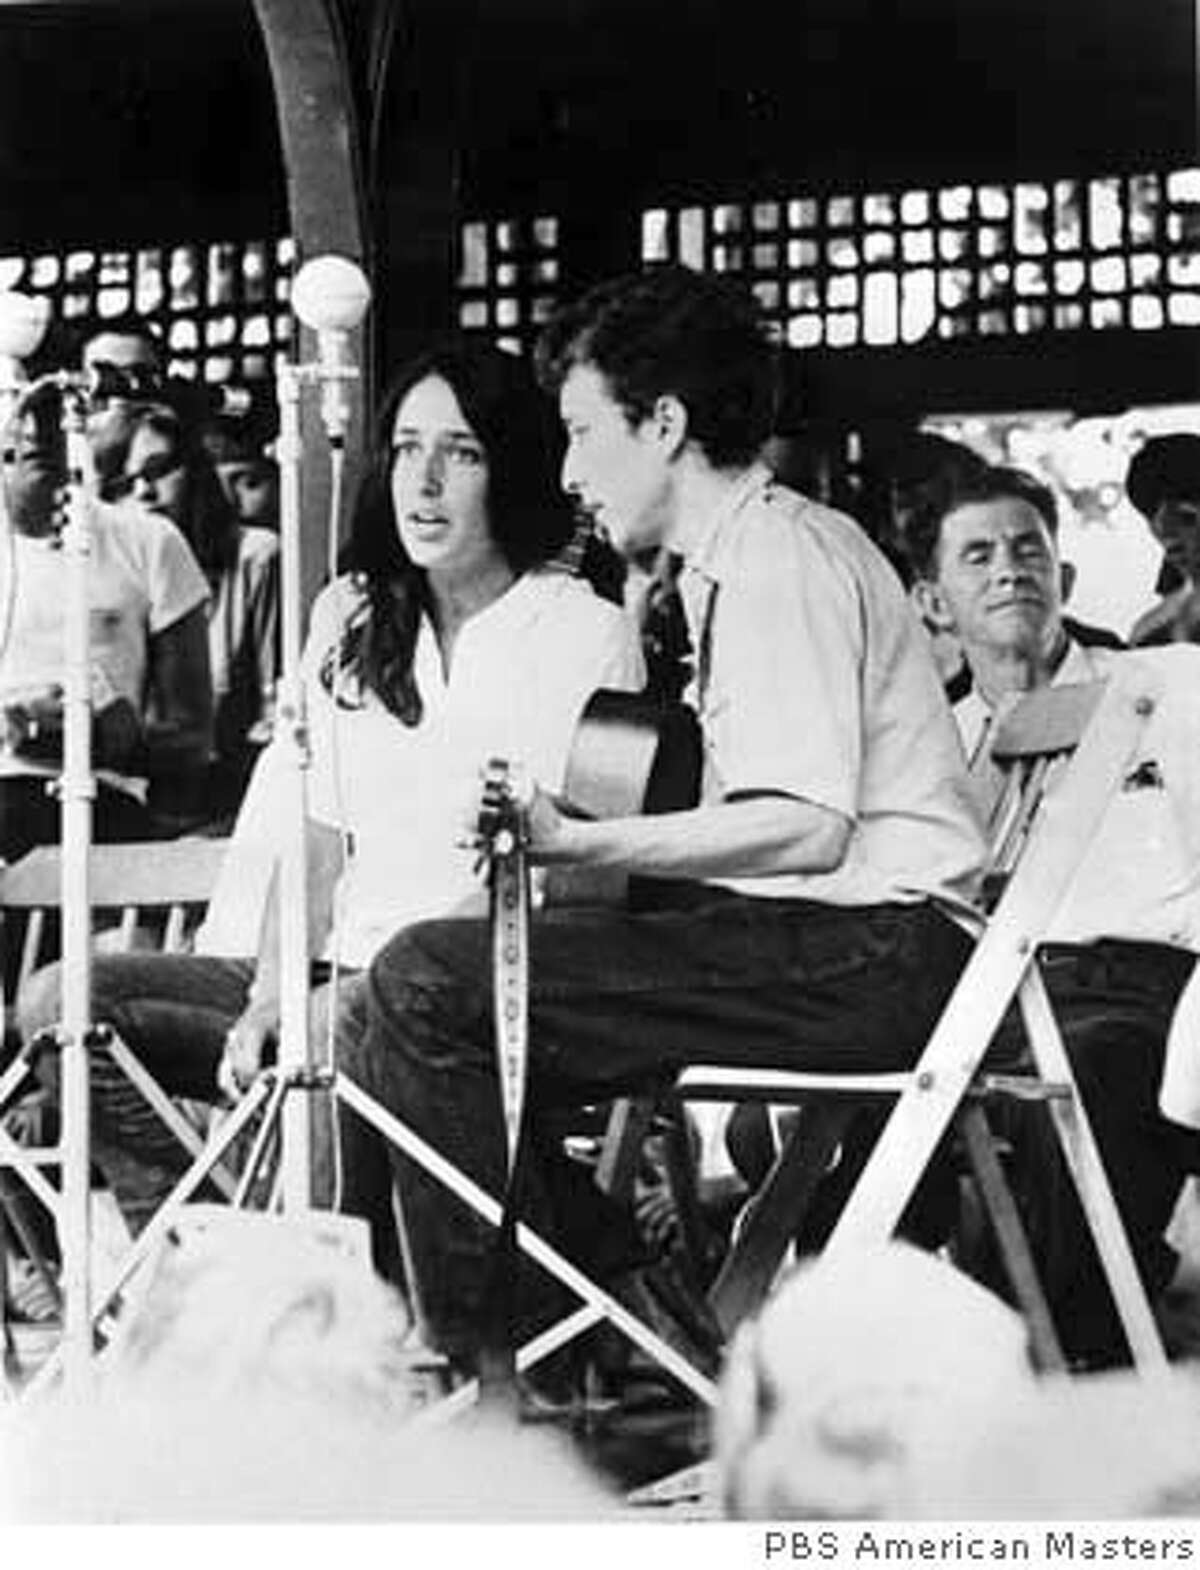 """** EDITORS, LIBRARIANS: PLEASE CORRECT THE CAPTION TO READ """"American Masters,"""" NOT """"American Masterpiece,"""" AS SENT**FILE**Folk singers Joan Baez, left, and Bob Dylan perform at the Newport Jazz Festival in Newport, R.I. in 1963. Dylan is the subject of a documentary film by Martin Scorsese, titled """"No Direction Home: Bob Dylan,"""" which airs as an """"American Masters"""" special at 9 p.m., EDT, Monday and Tuesday on PBS. (AP Photo) A 1963 FILE PHOTO."""